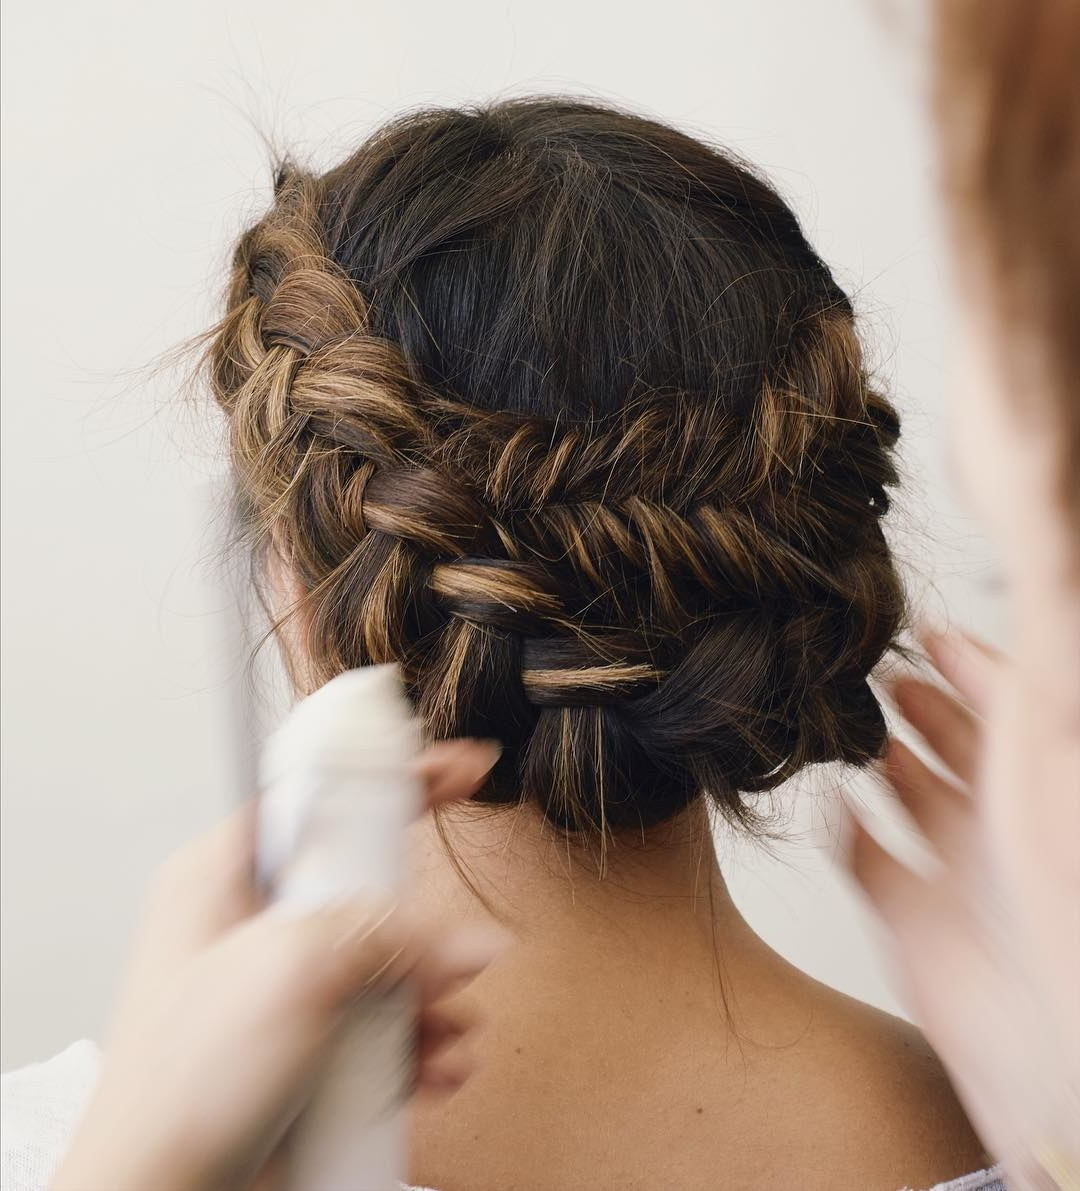 Brides For Latest Curly Bob Bridal Hairdos With Side Twists (View 4 of 20)